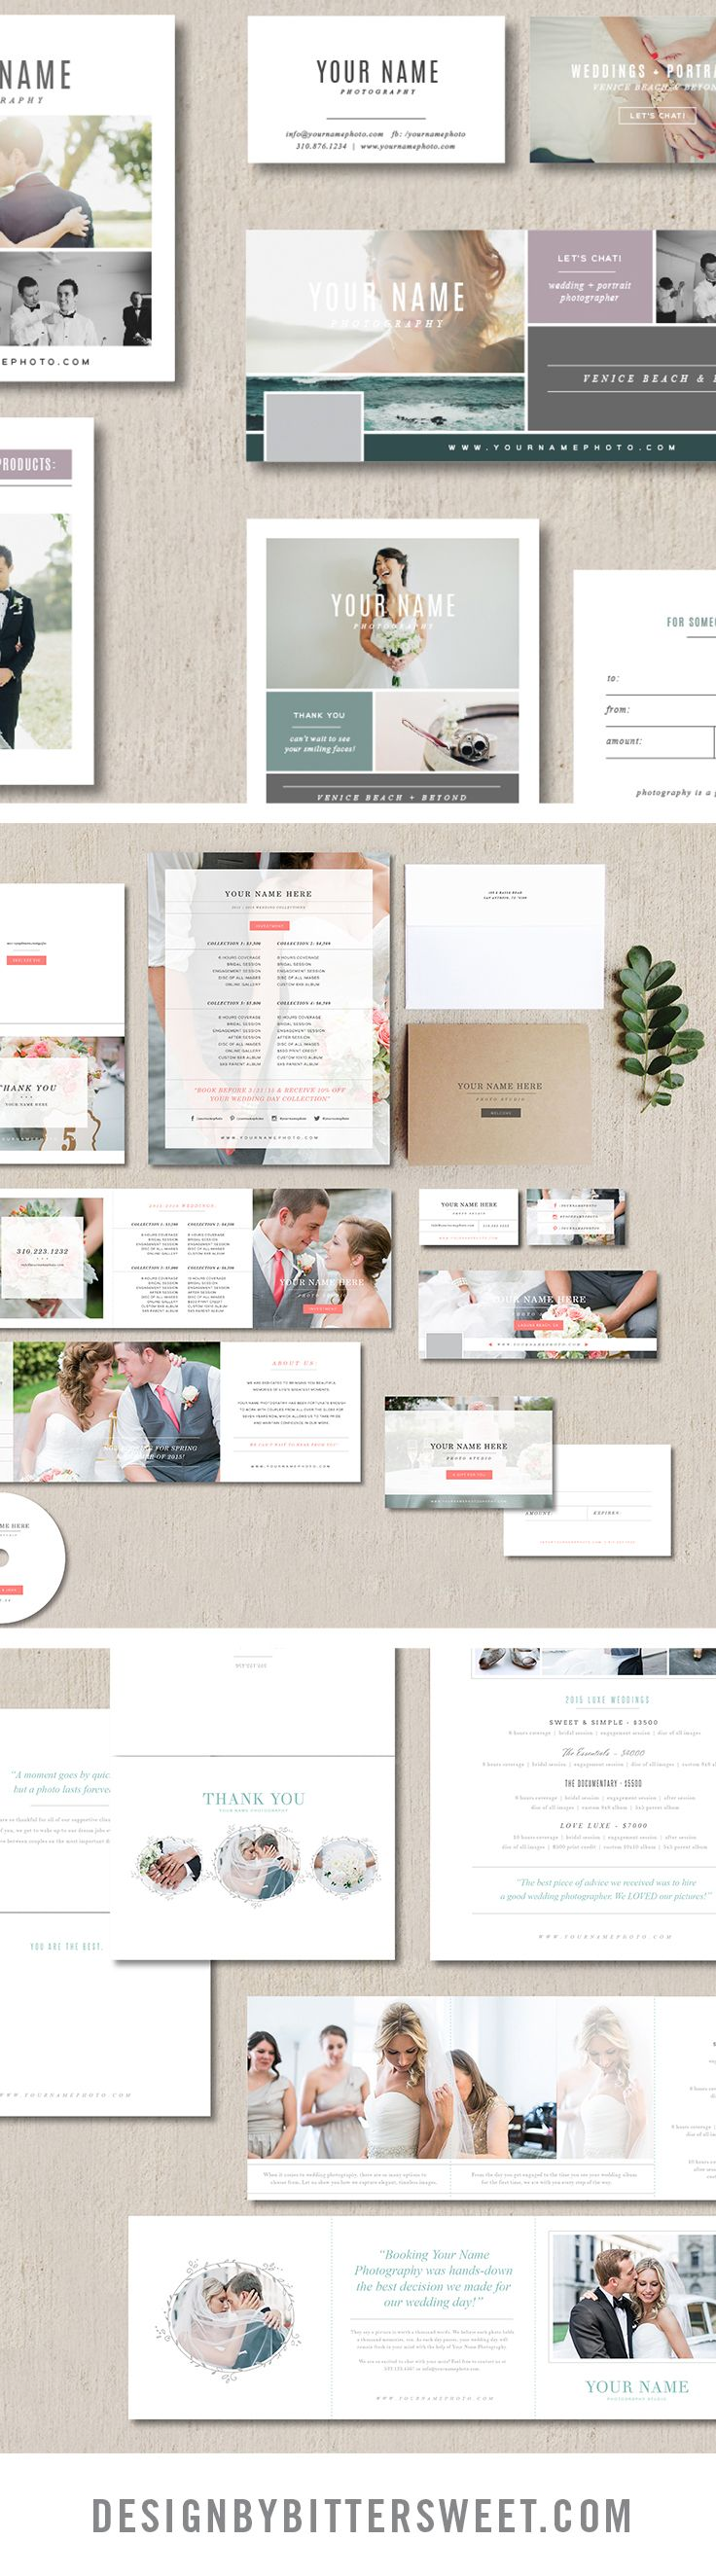 Wedding photographer welcome packet. Photography templates ...